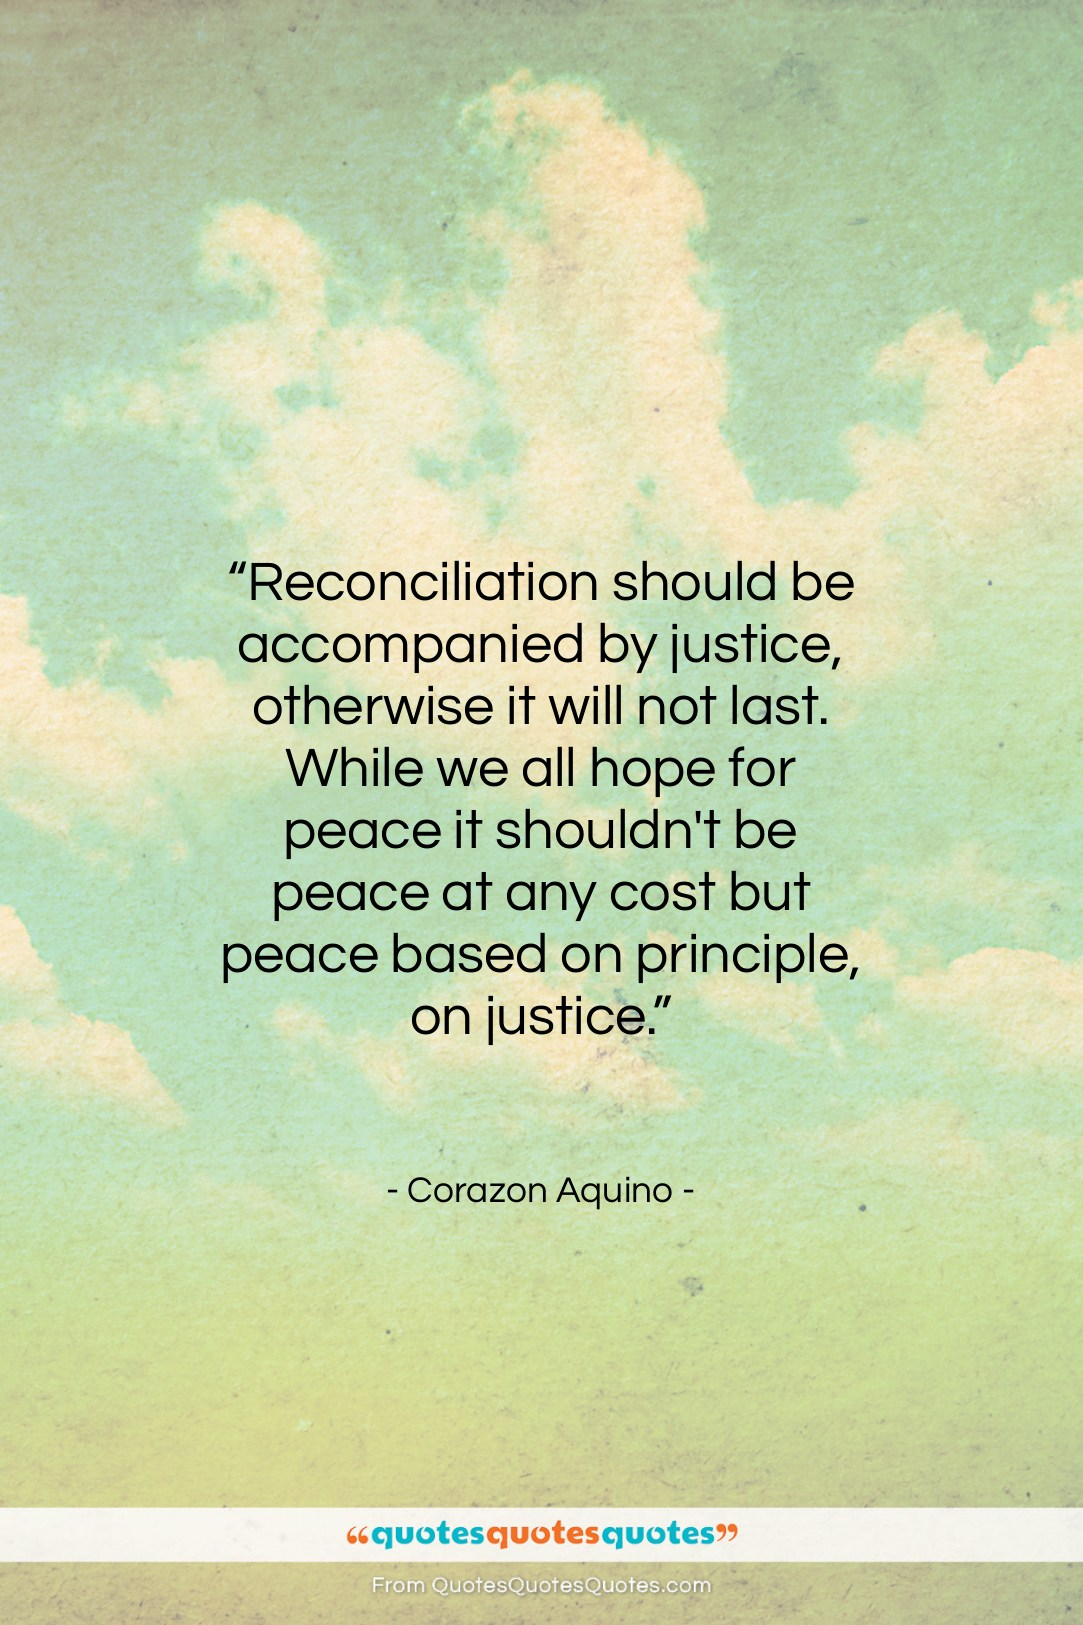 """Corazon Aquino quote: """"Reconciliation should be accompanied by justice, otherwise…""""- at QuotesQuotesQuotes.com"""